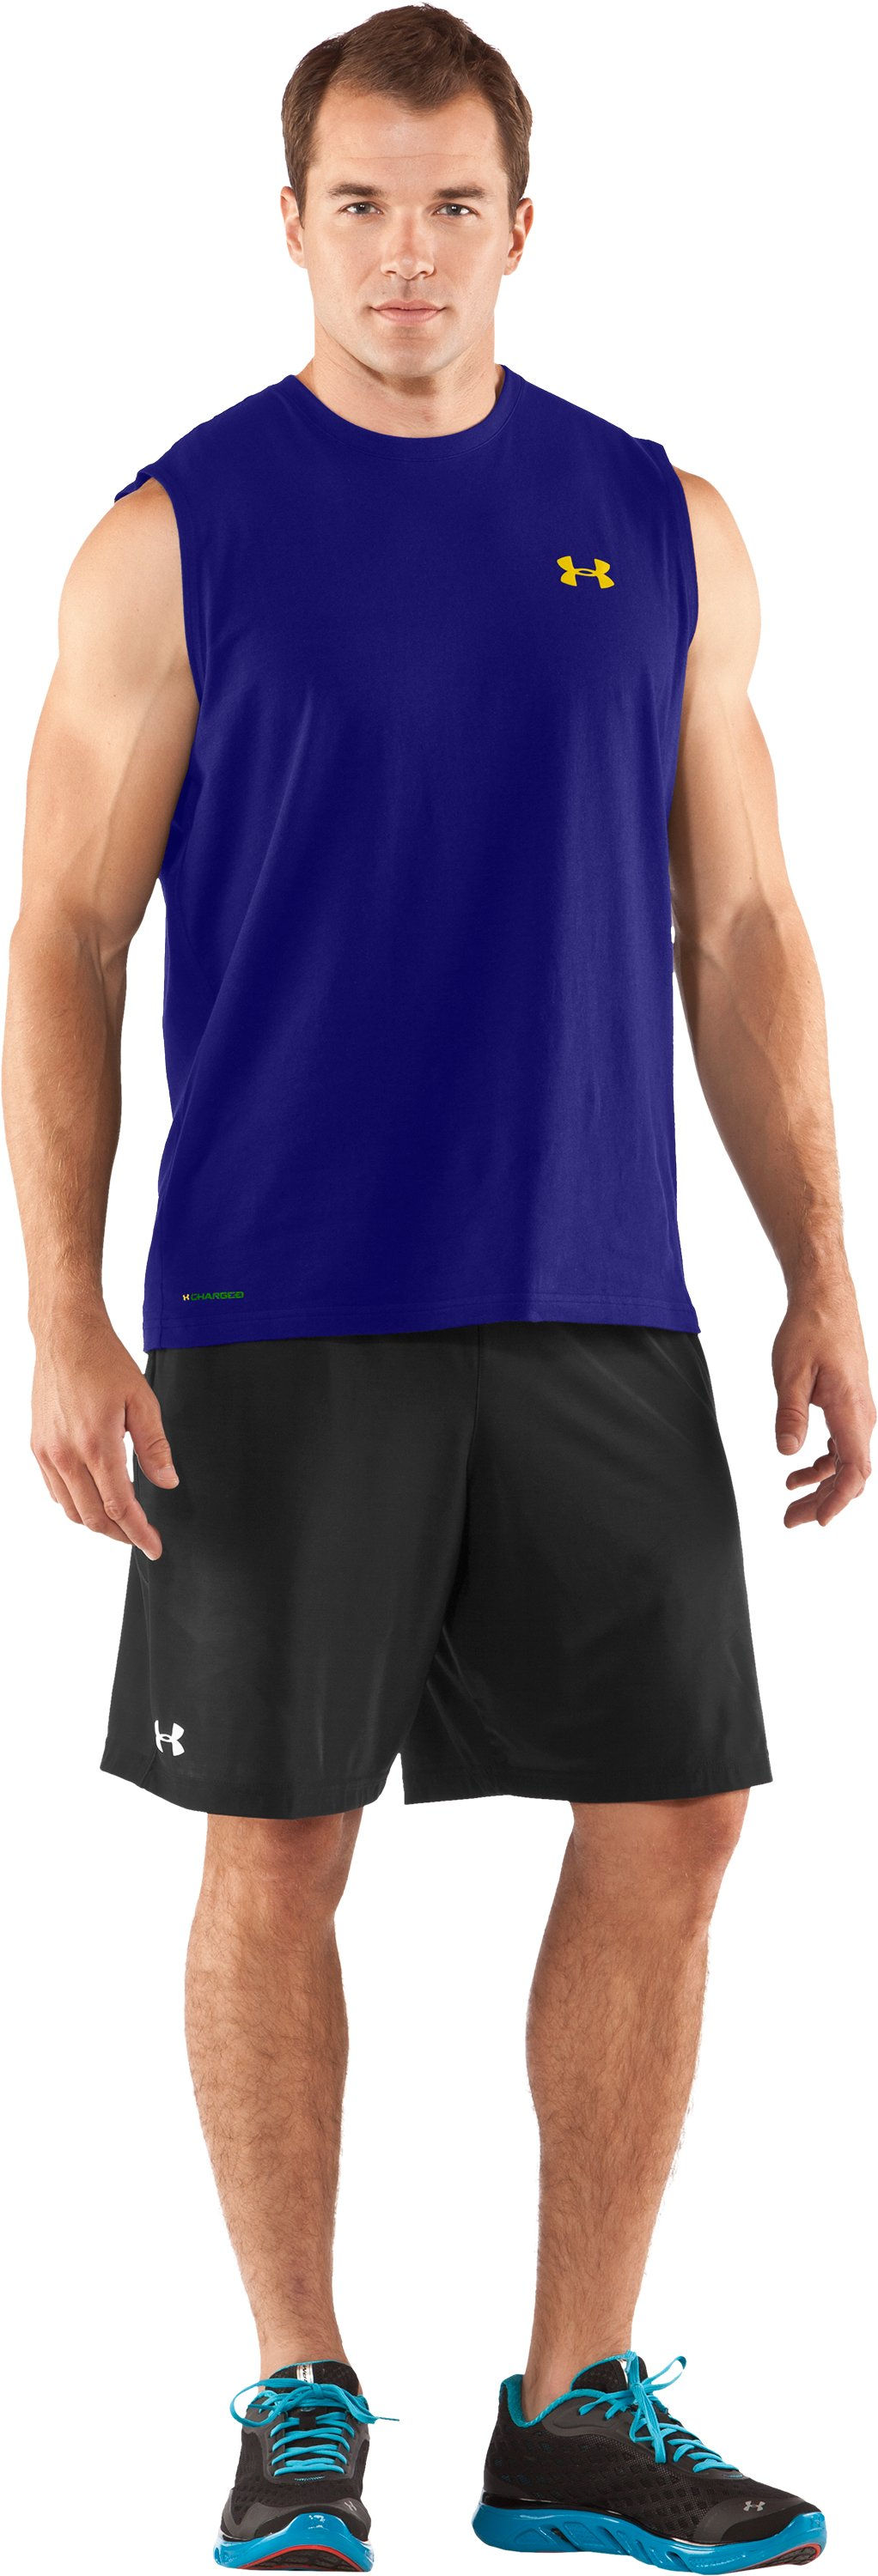 Men's Charged Cotton® Sleeveless T-shirt, Caspian, zoomed image